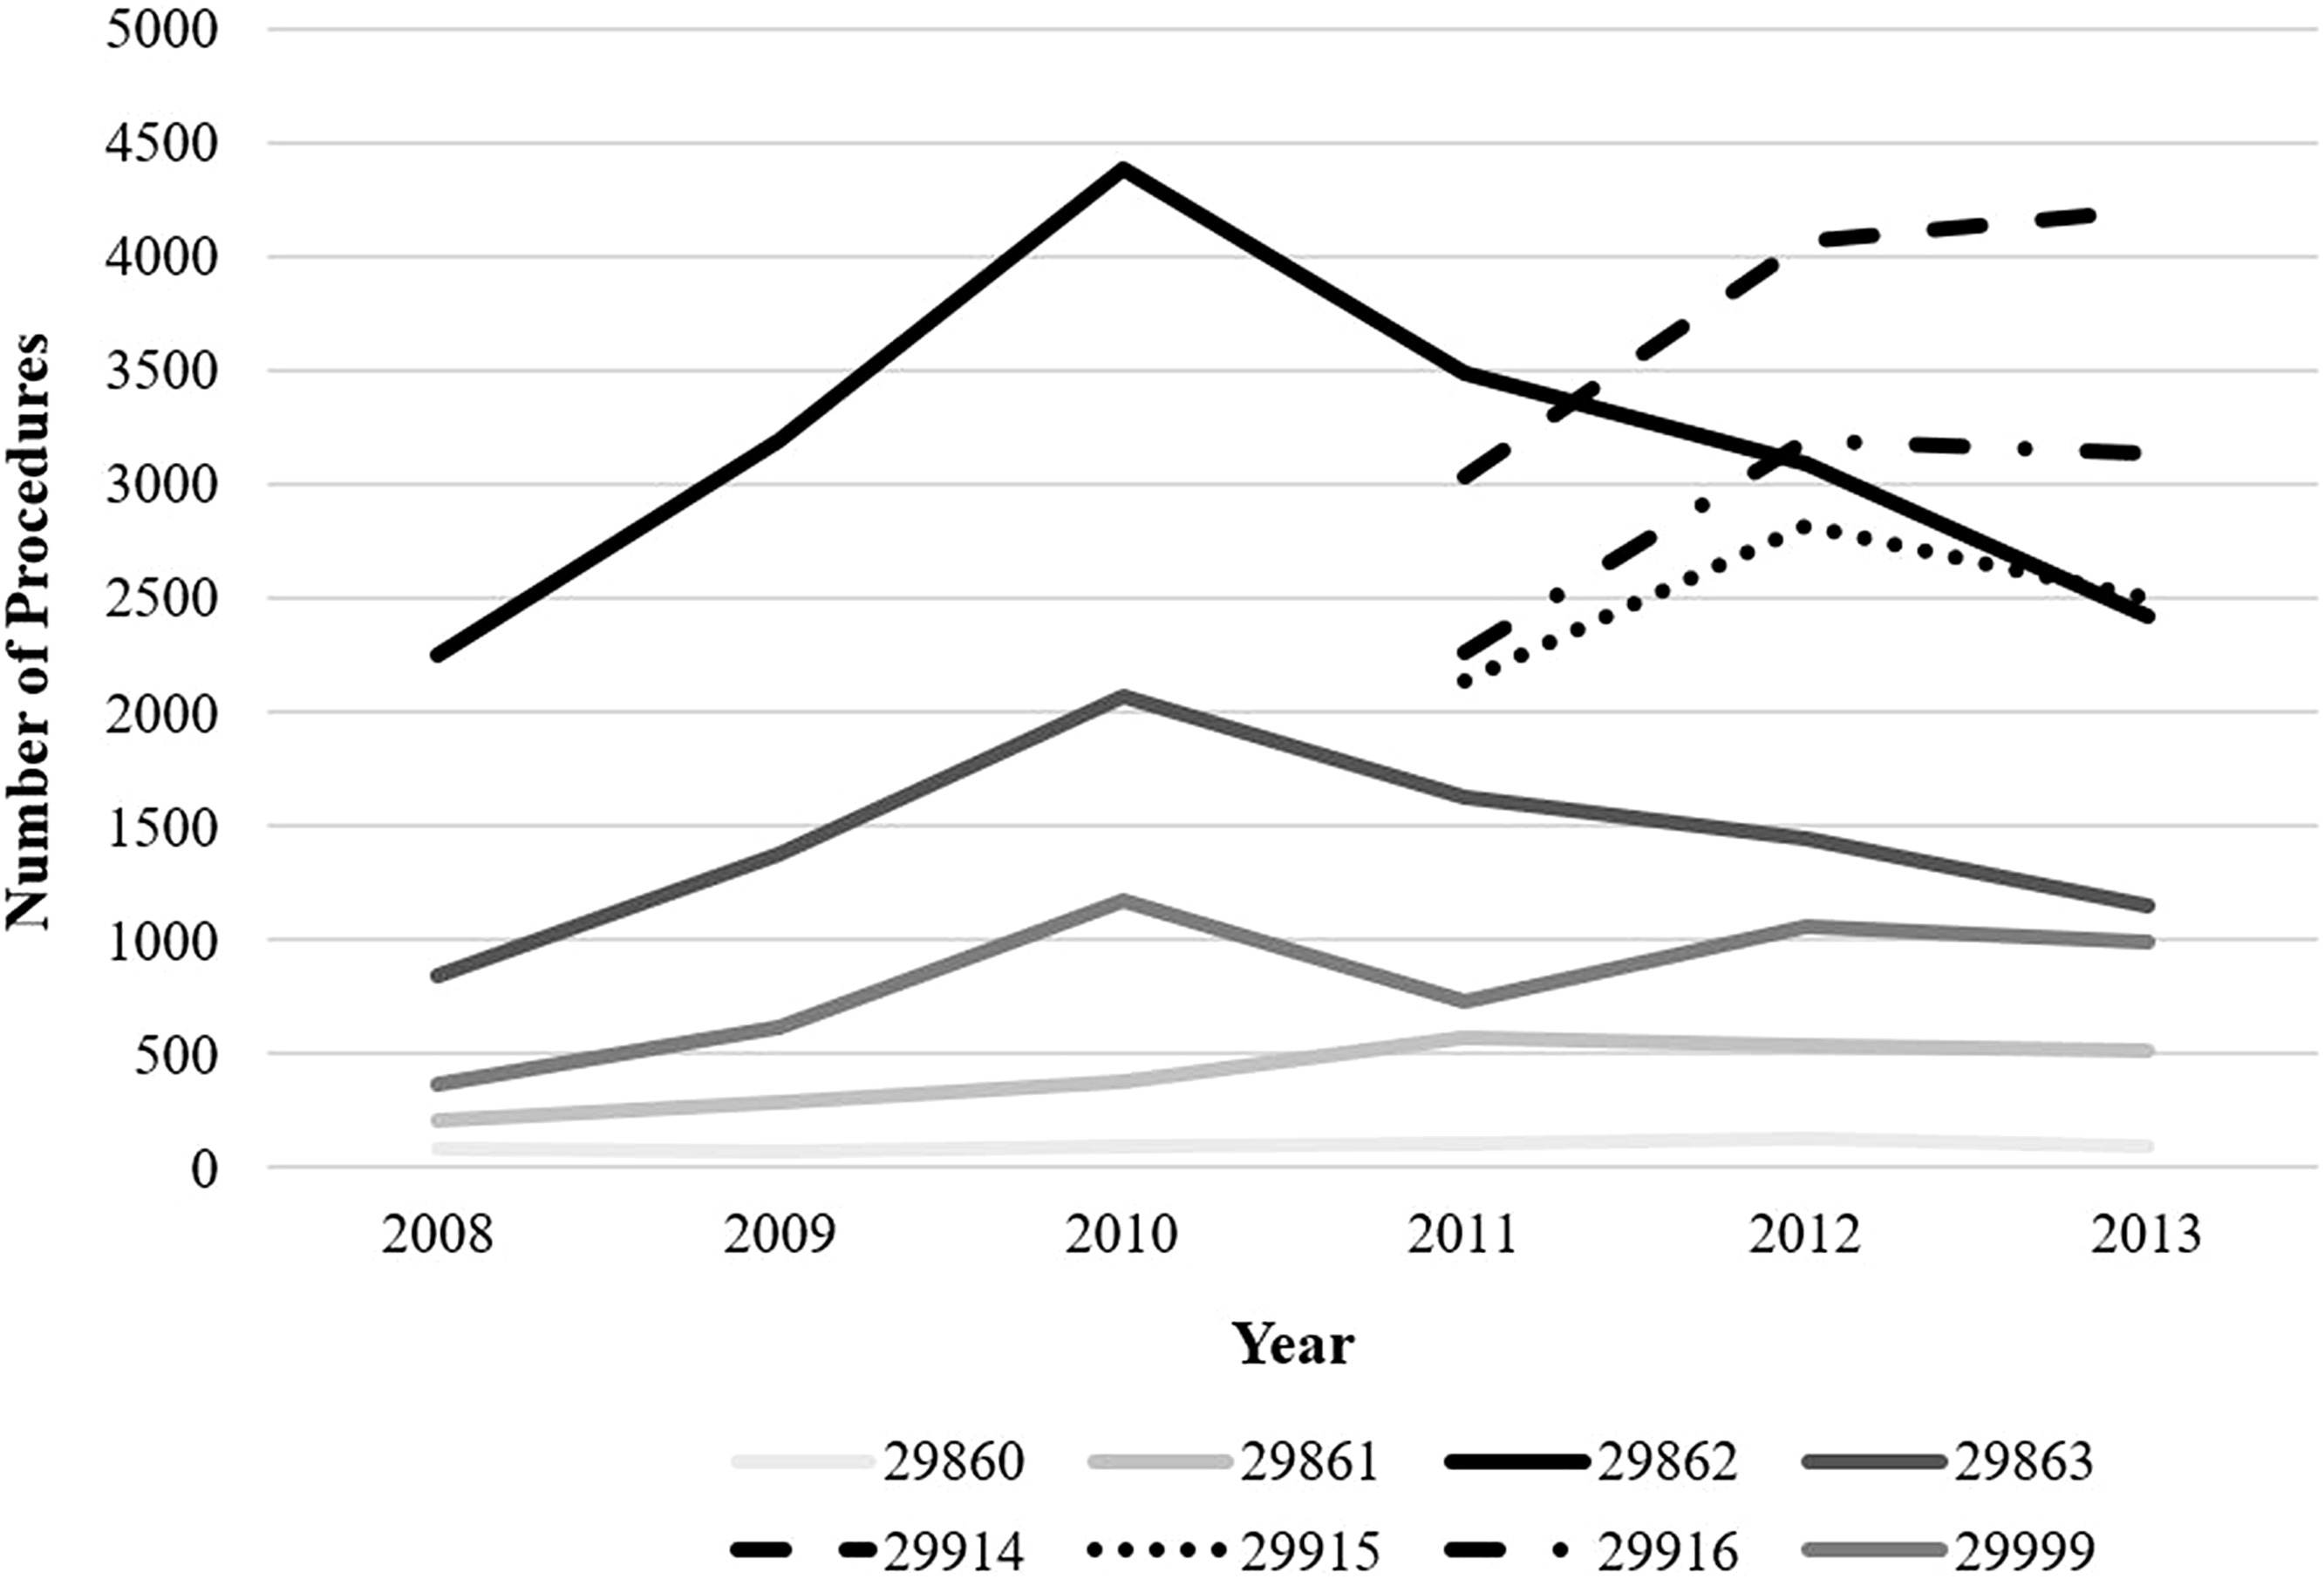 Surgical Trends in Arthroscopic Hip Surgery Using a Large